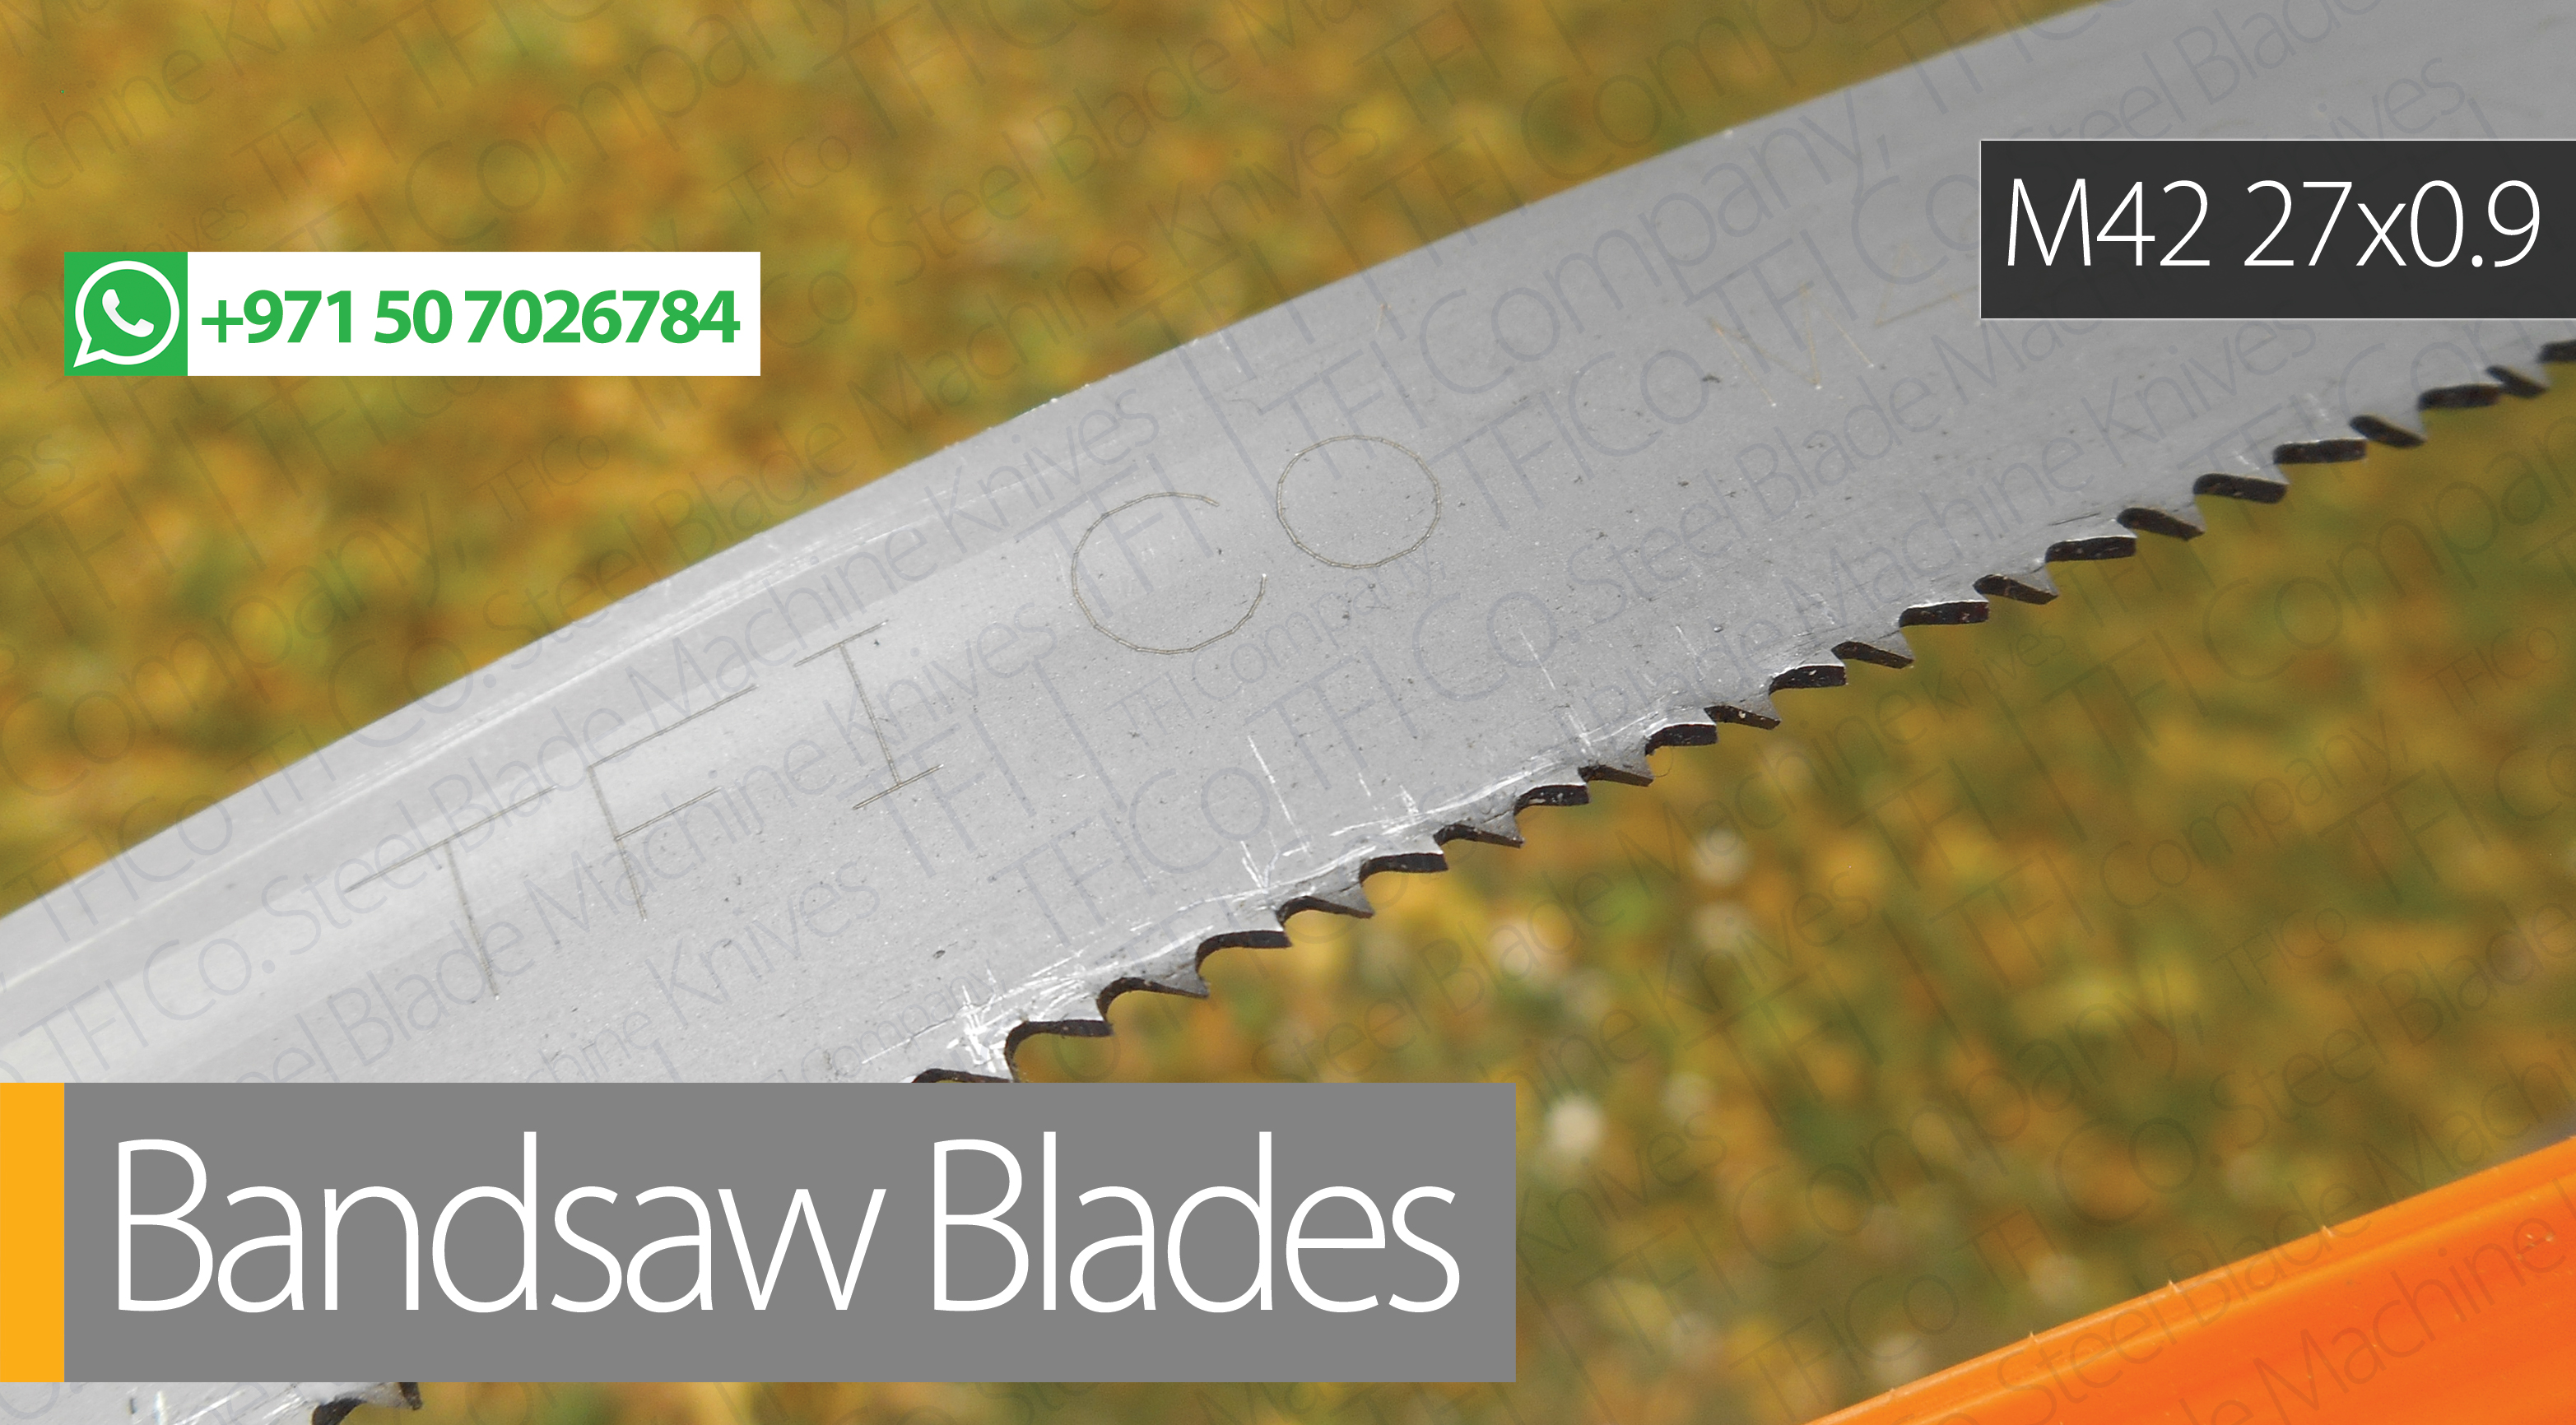 bandsaw blade 27 0.9 ,Provider ,blade band, good, saw, blade, uae, saudi, tfico, welding , loop, lentochni, amada, supplier, steel, m42, Supplier in UAE Although all manufacturers provides with welding we do